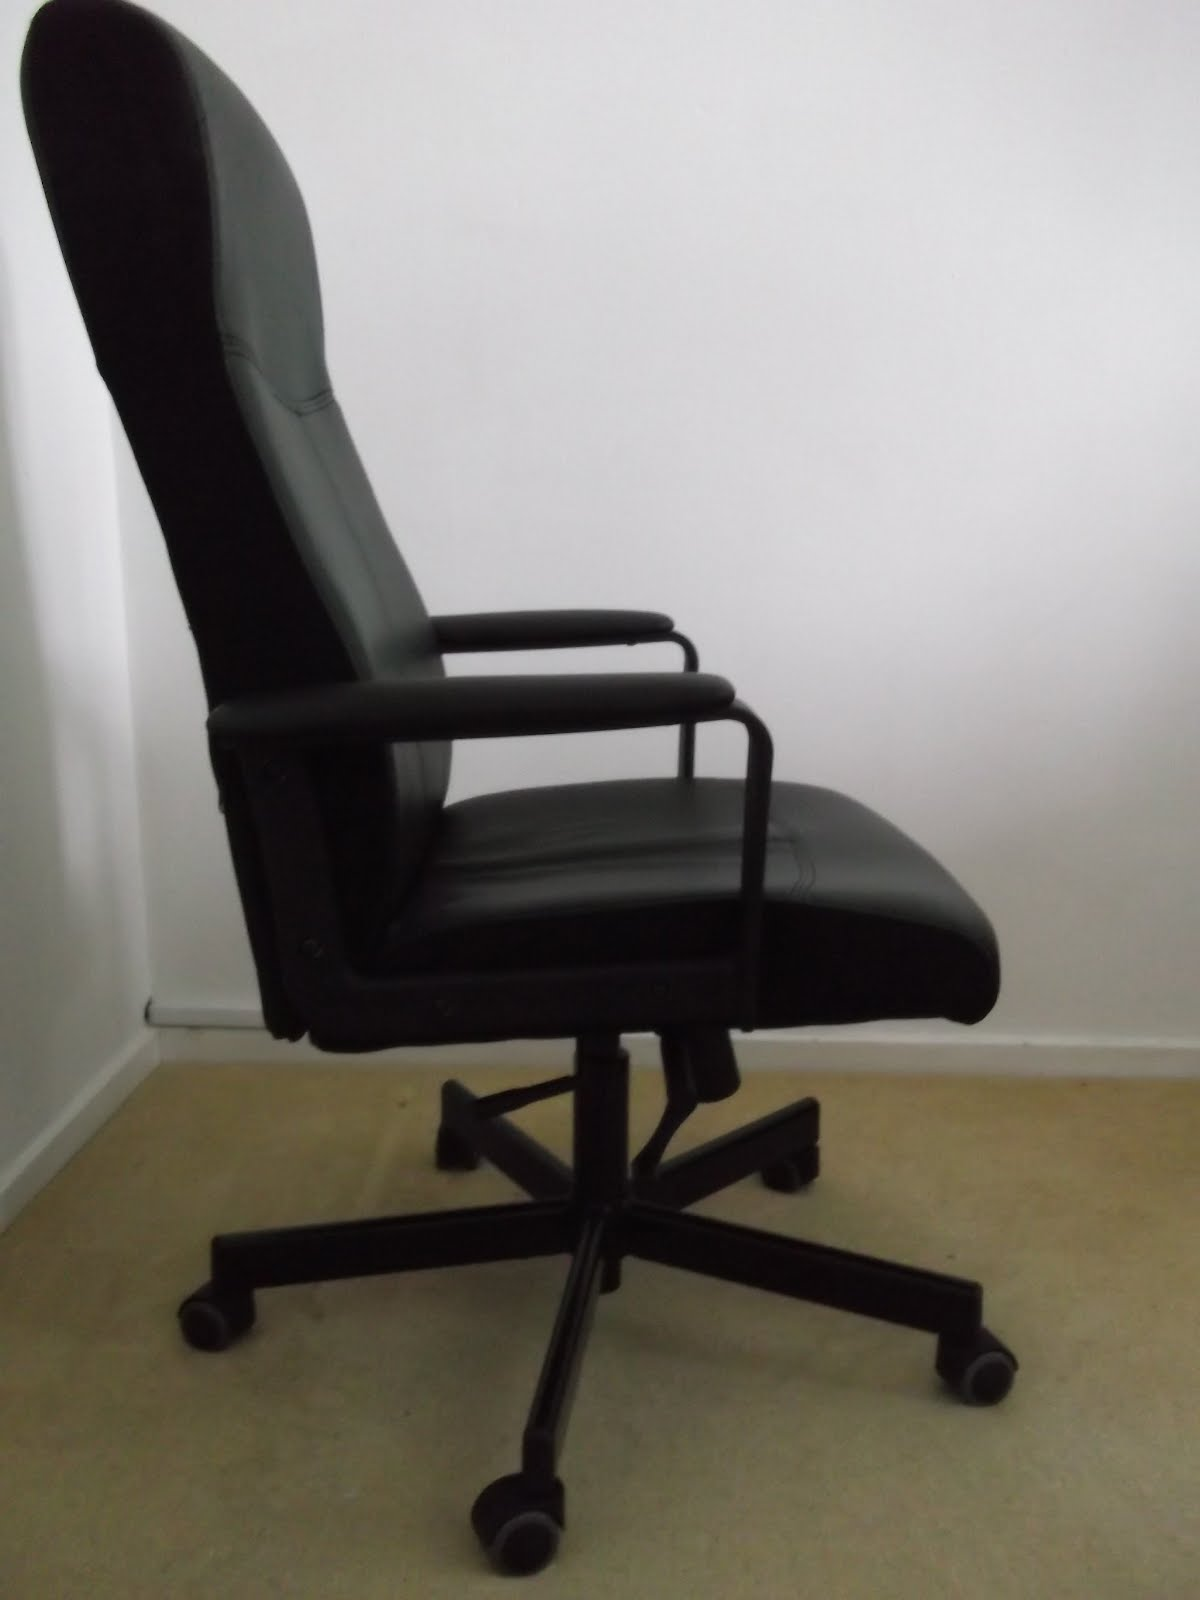 Genial Ikea Malkolm Office Swivel Chair